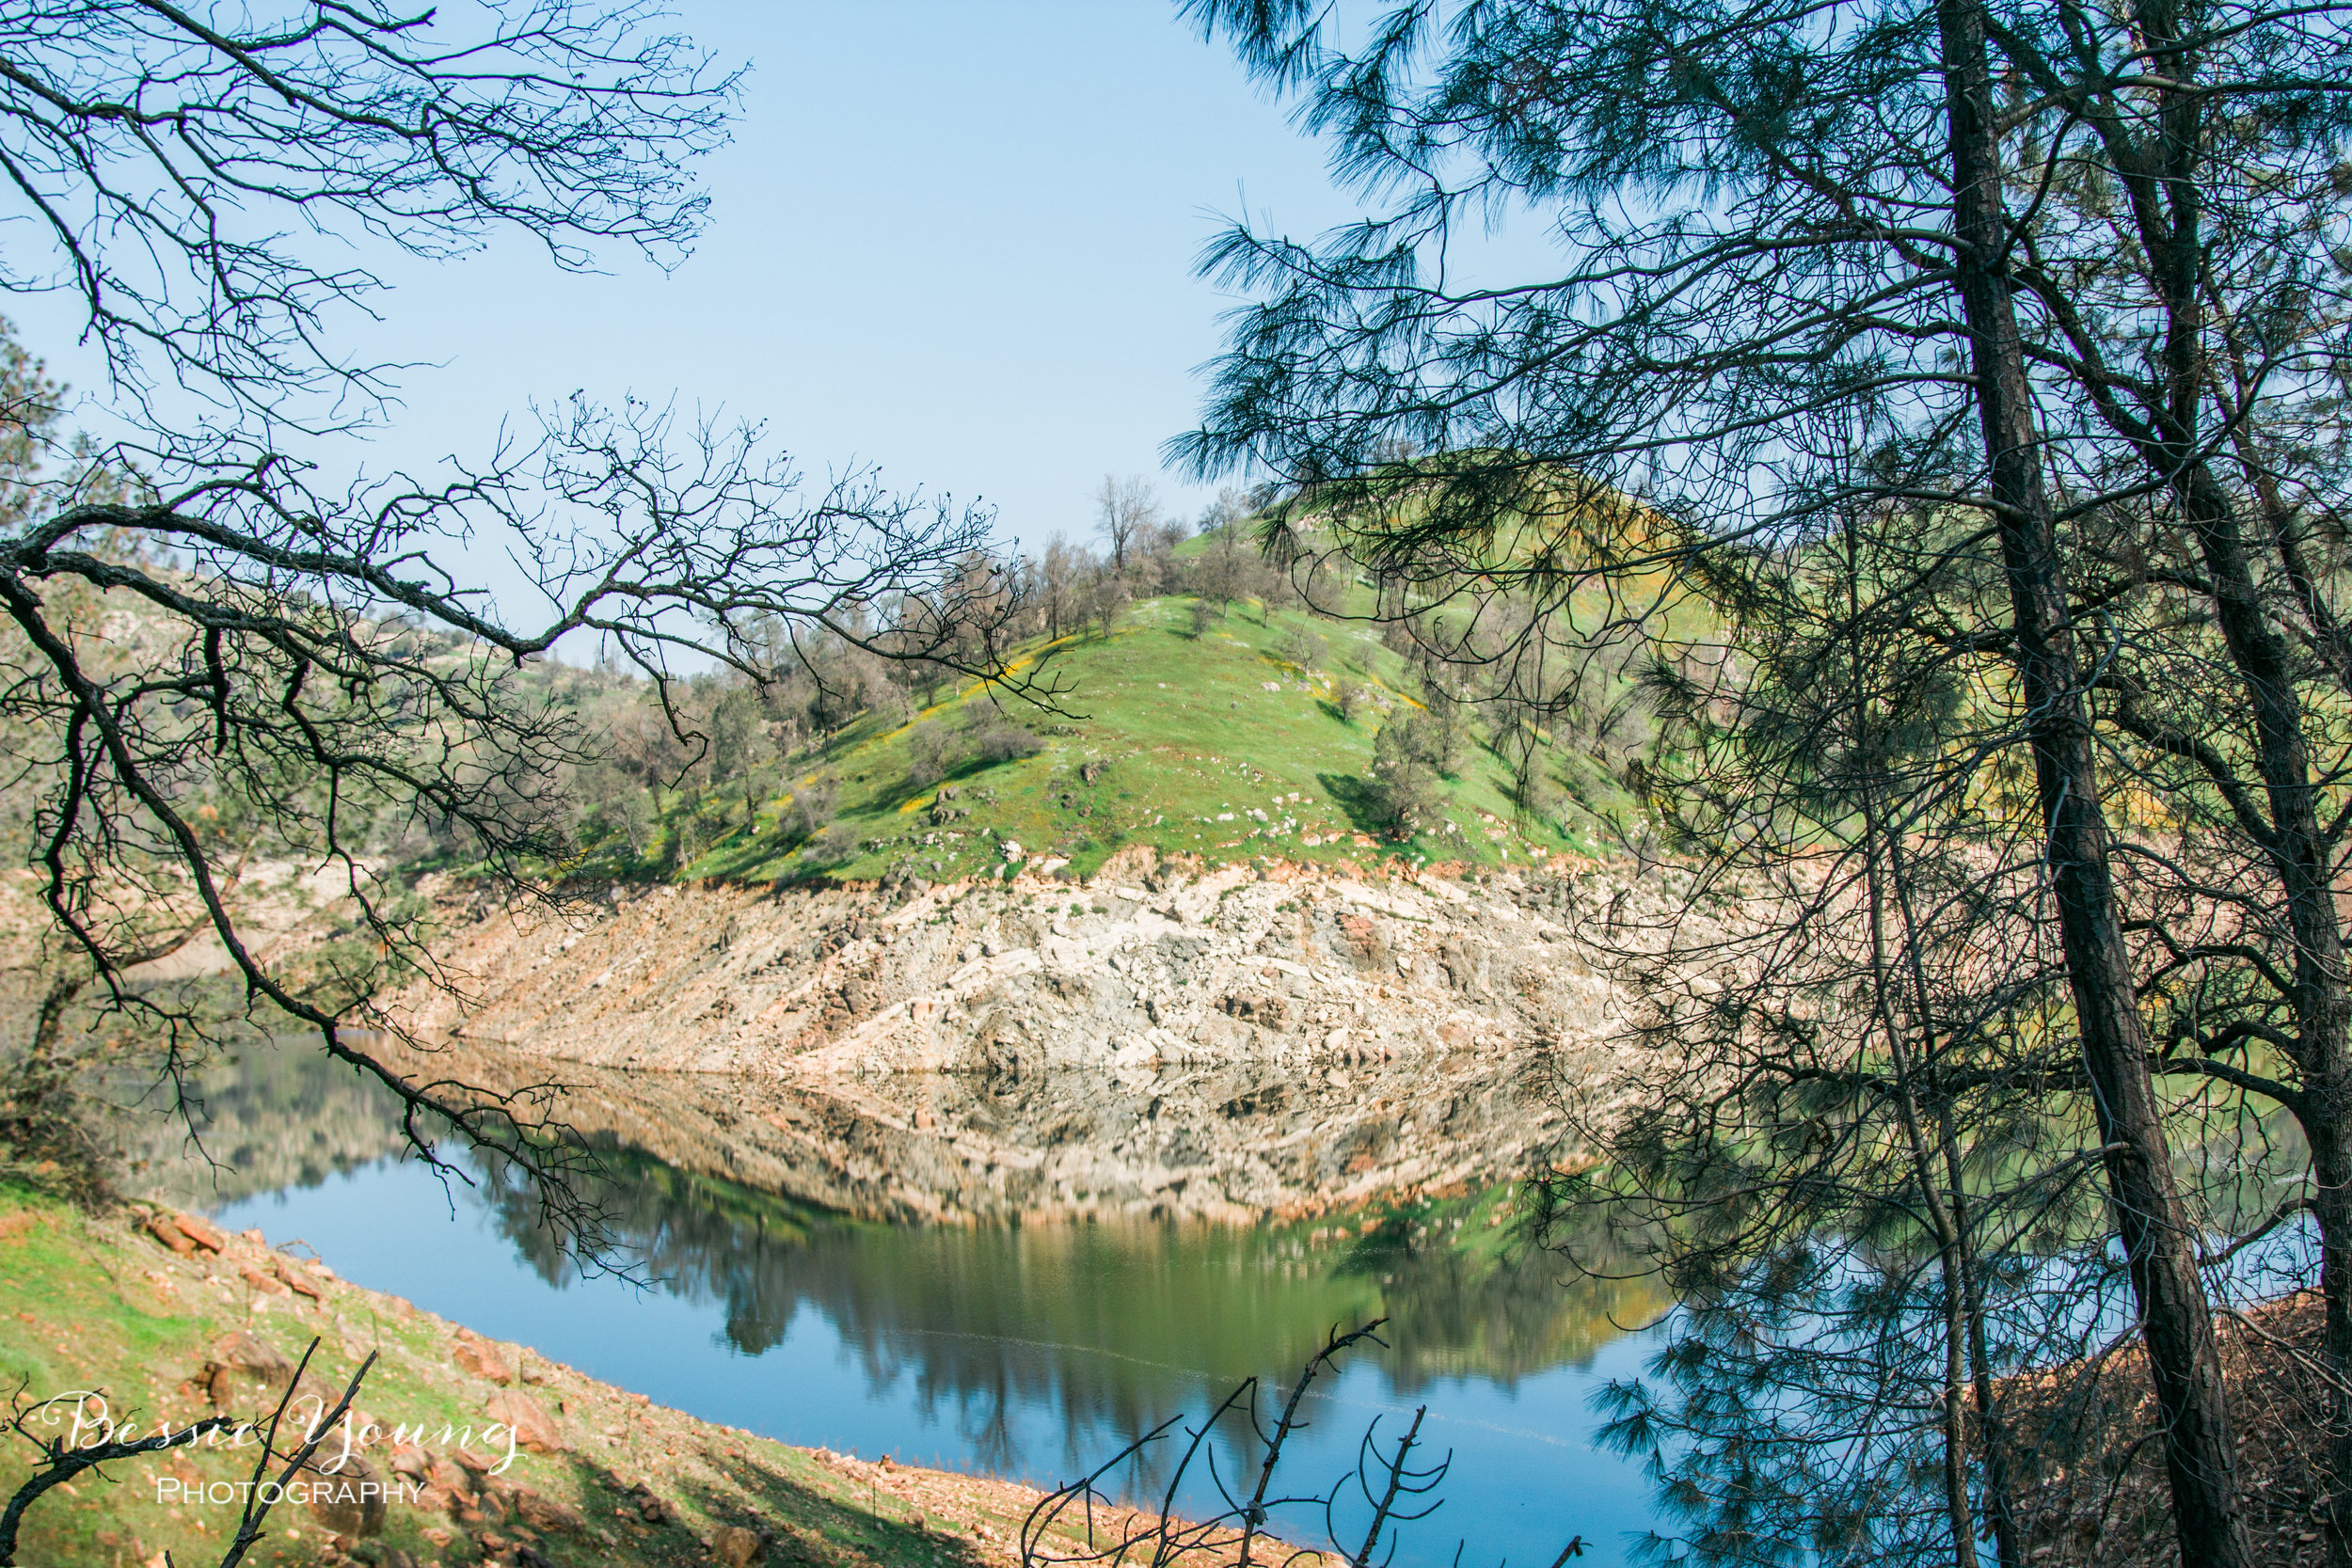 San Joaquin River Trail - California Hiking Trail by Bessie Young Photography